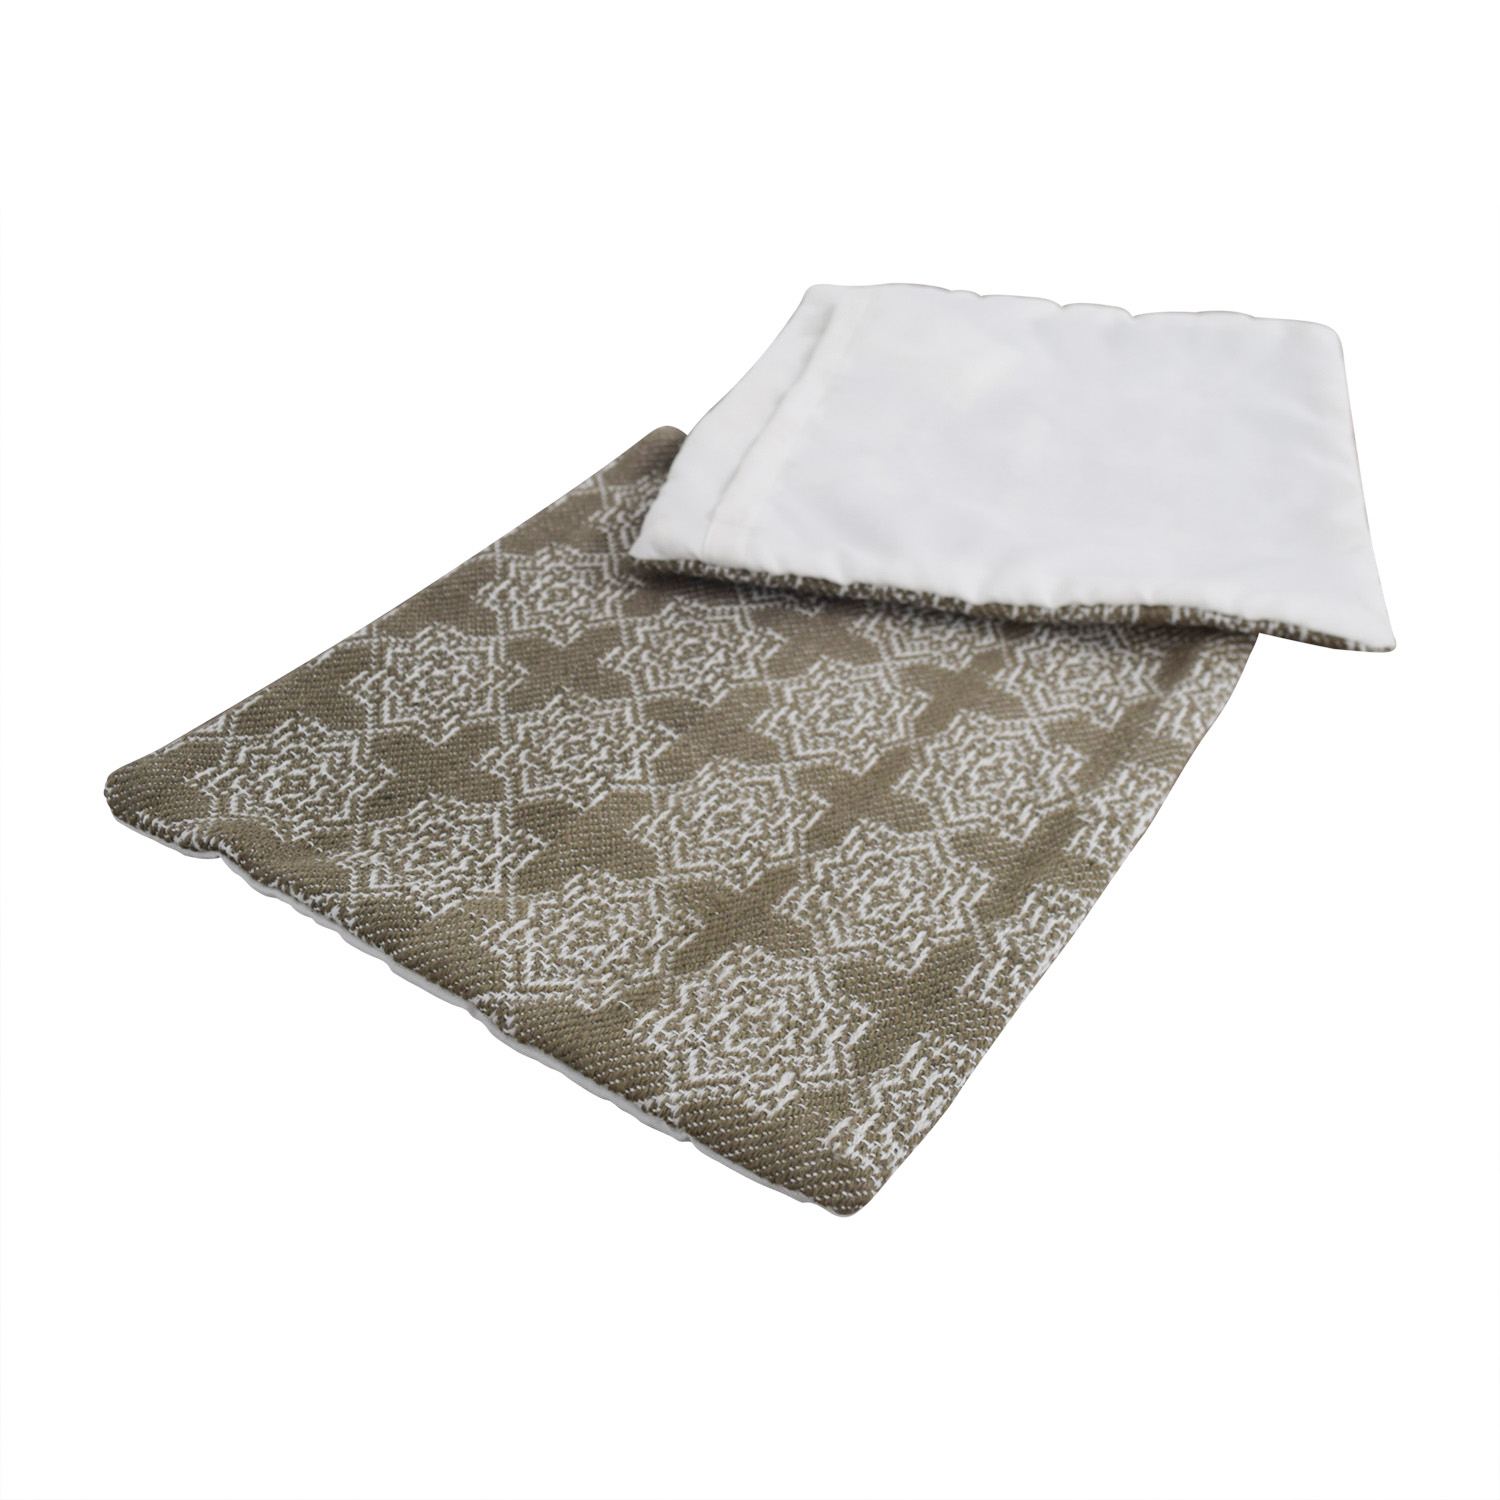 shop Obeetee Obeetee Trellis Cushion Cover online